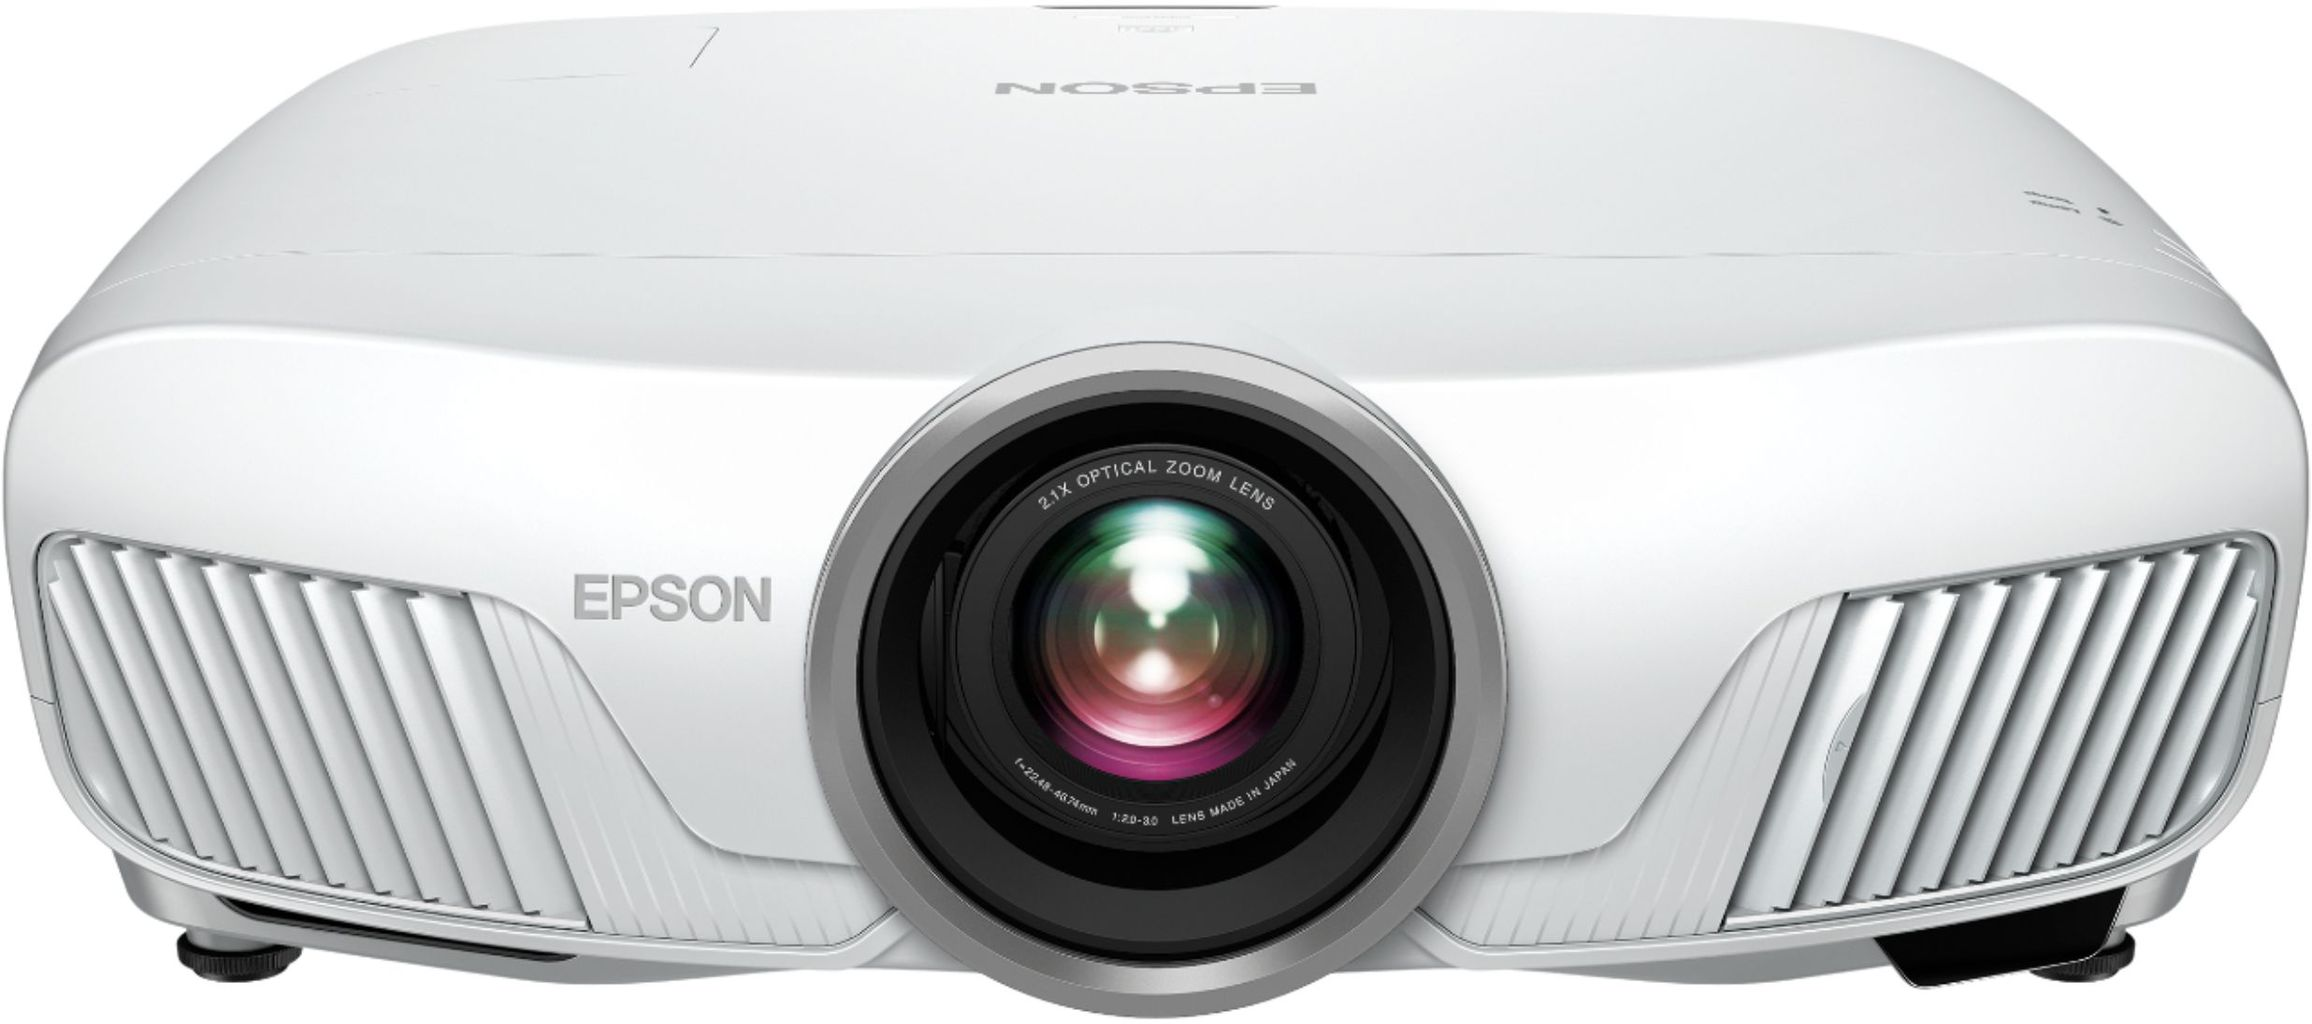 Create a Home Theatre with Epson Home Cinema 4010